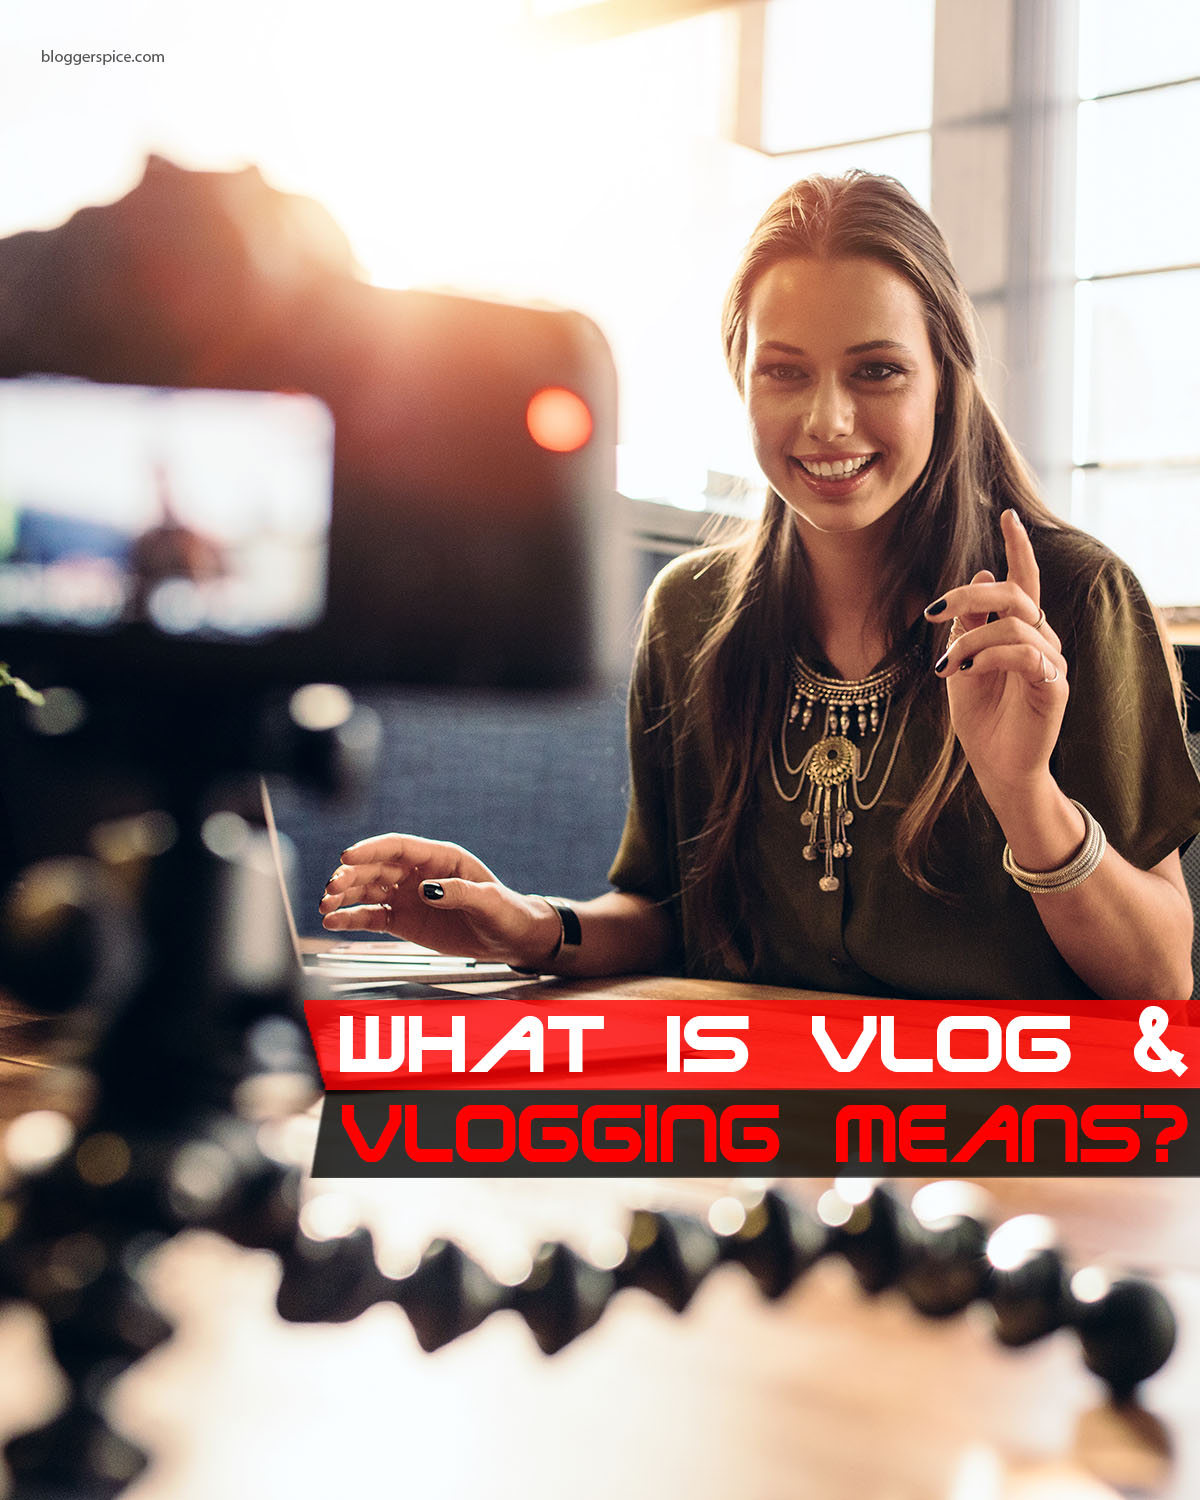 check out all this great information we have for those planning on becoming vloggers,